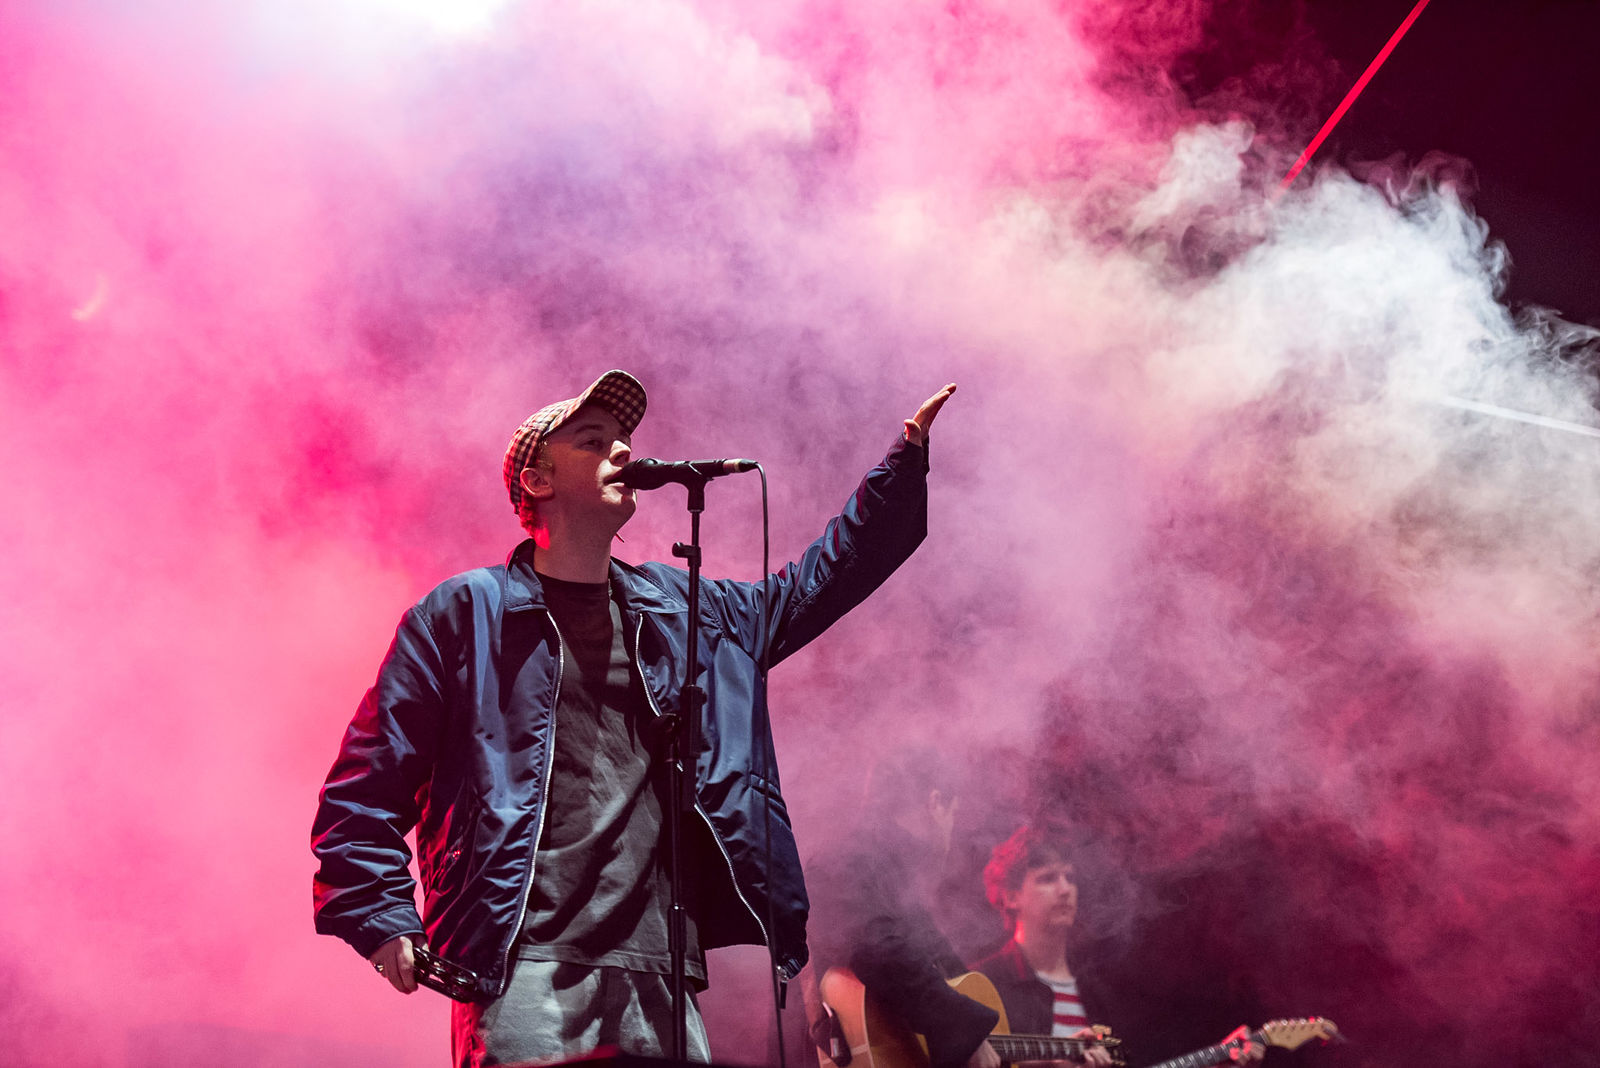 DMA'S PERFORMING ON THE BBC RADIO 1 STAGE AT FIRST DAY OF LEEDS FESTIVAL 2018 -24.08.2018  PICTURE BY: CAITLIN MOGRIDE